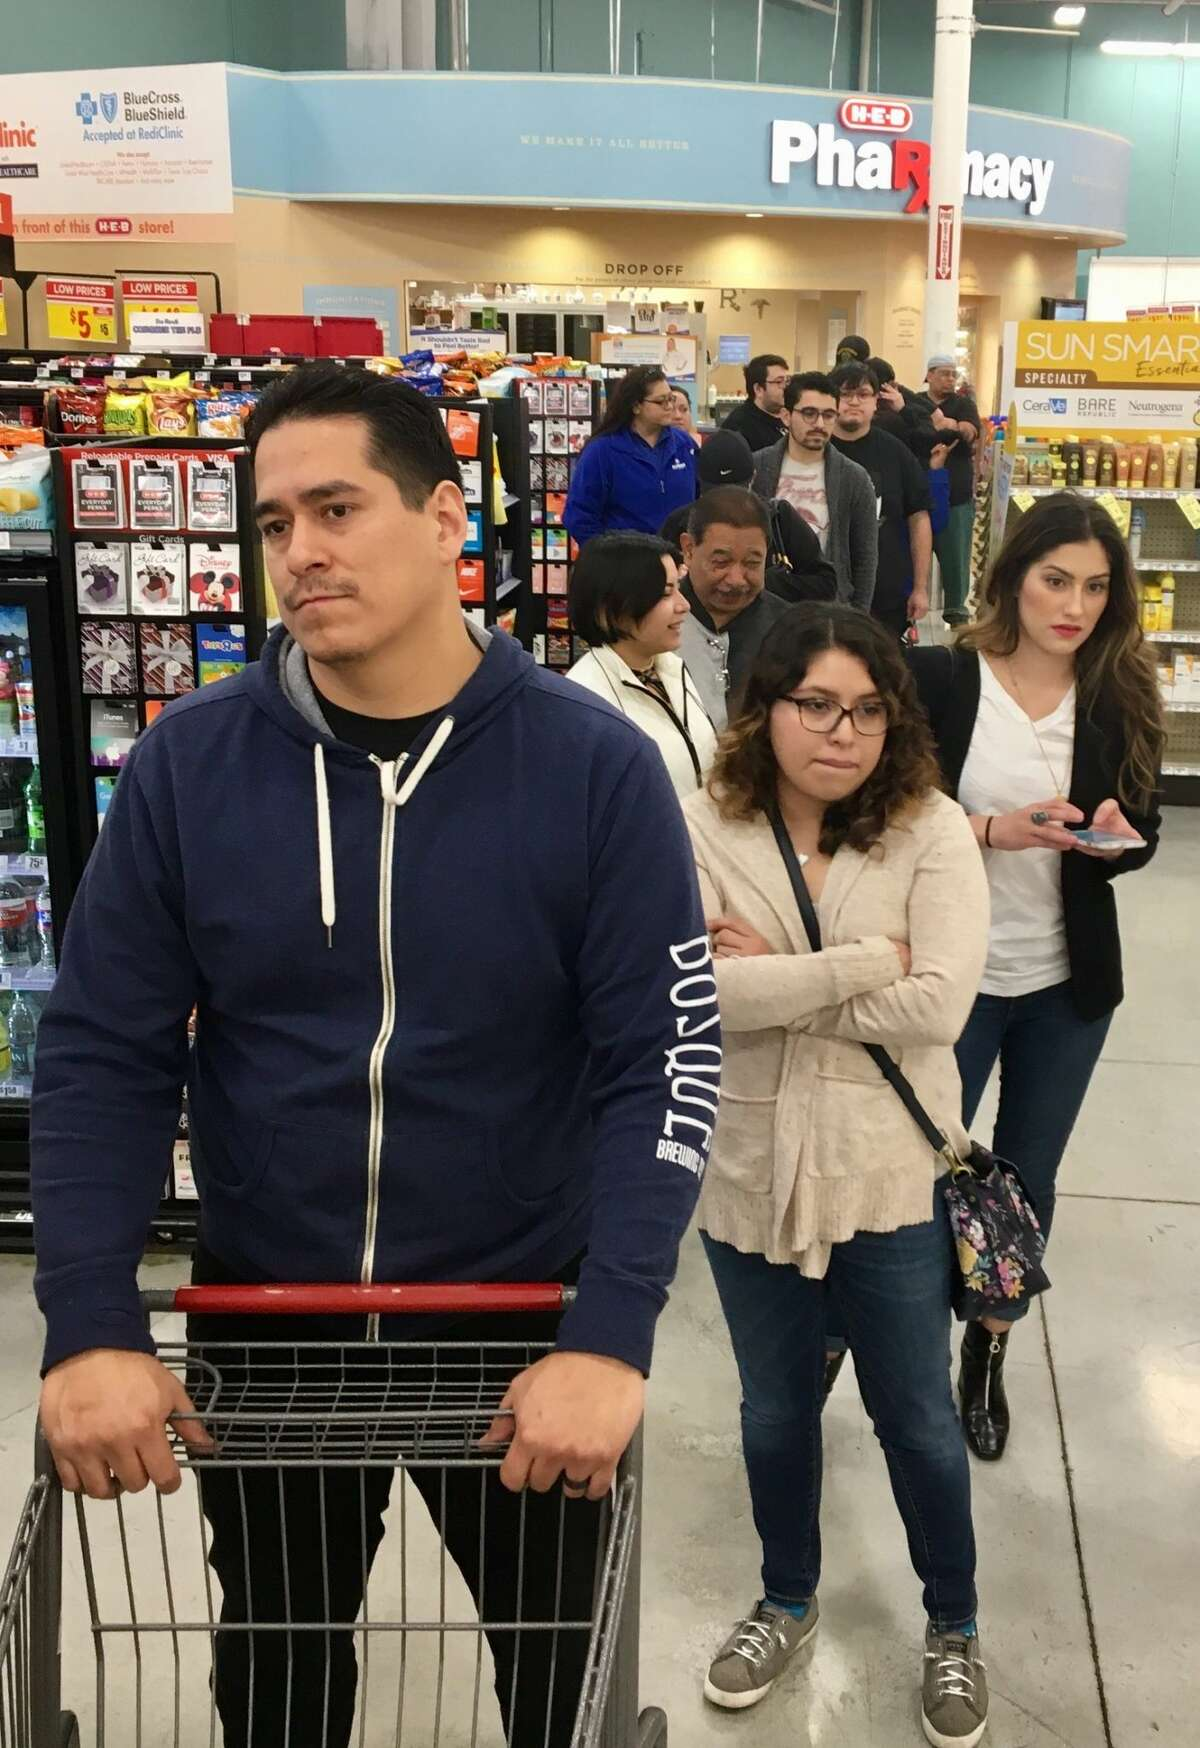 San Antonians wait in line at H-E-B at Alon Market for the hyped Selena bag on Friday, March 2, 2018. Bags reportedly sold out by 9:15 a.m. at the store, 15 minutes after they went on sale.